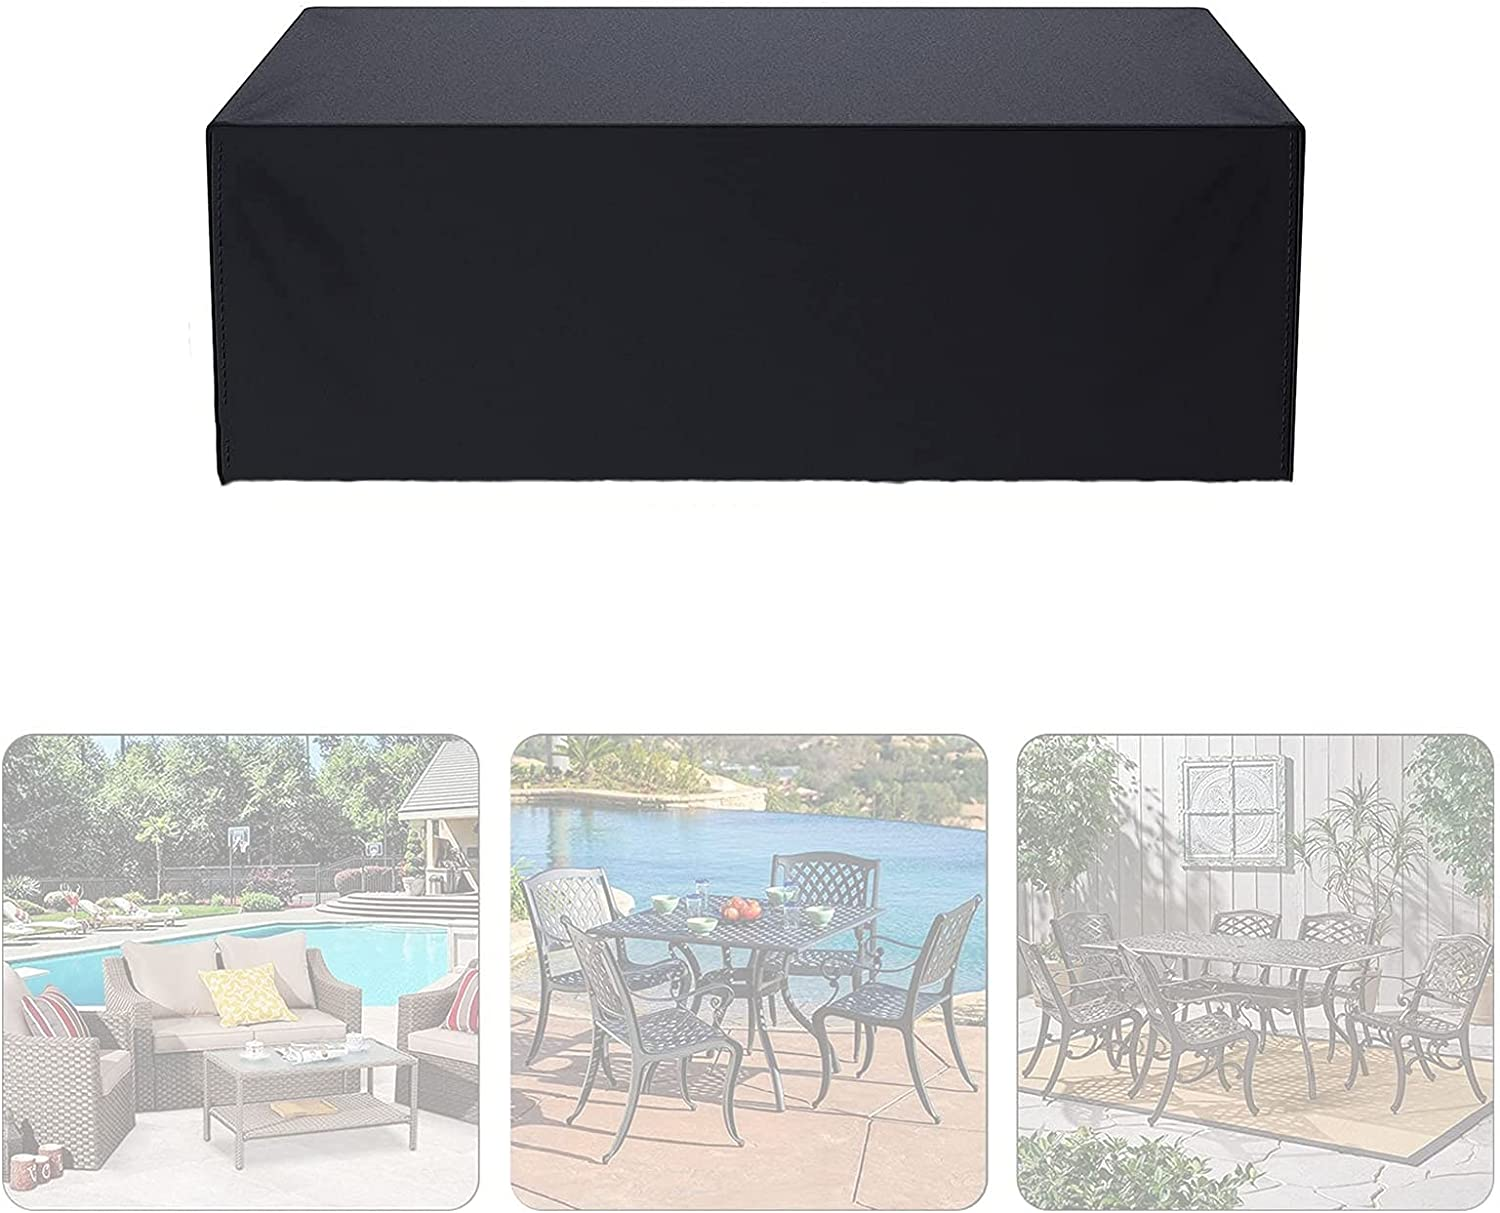 AWSAD Discount is also underway Outdoor Quality inspection Table Cover Oxford Fabric Waterproof